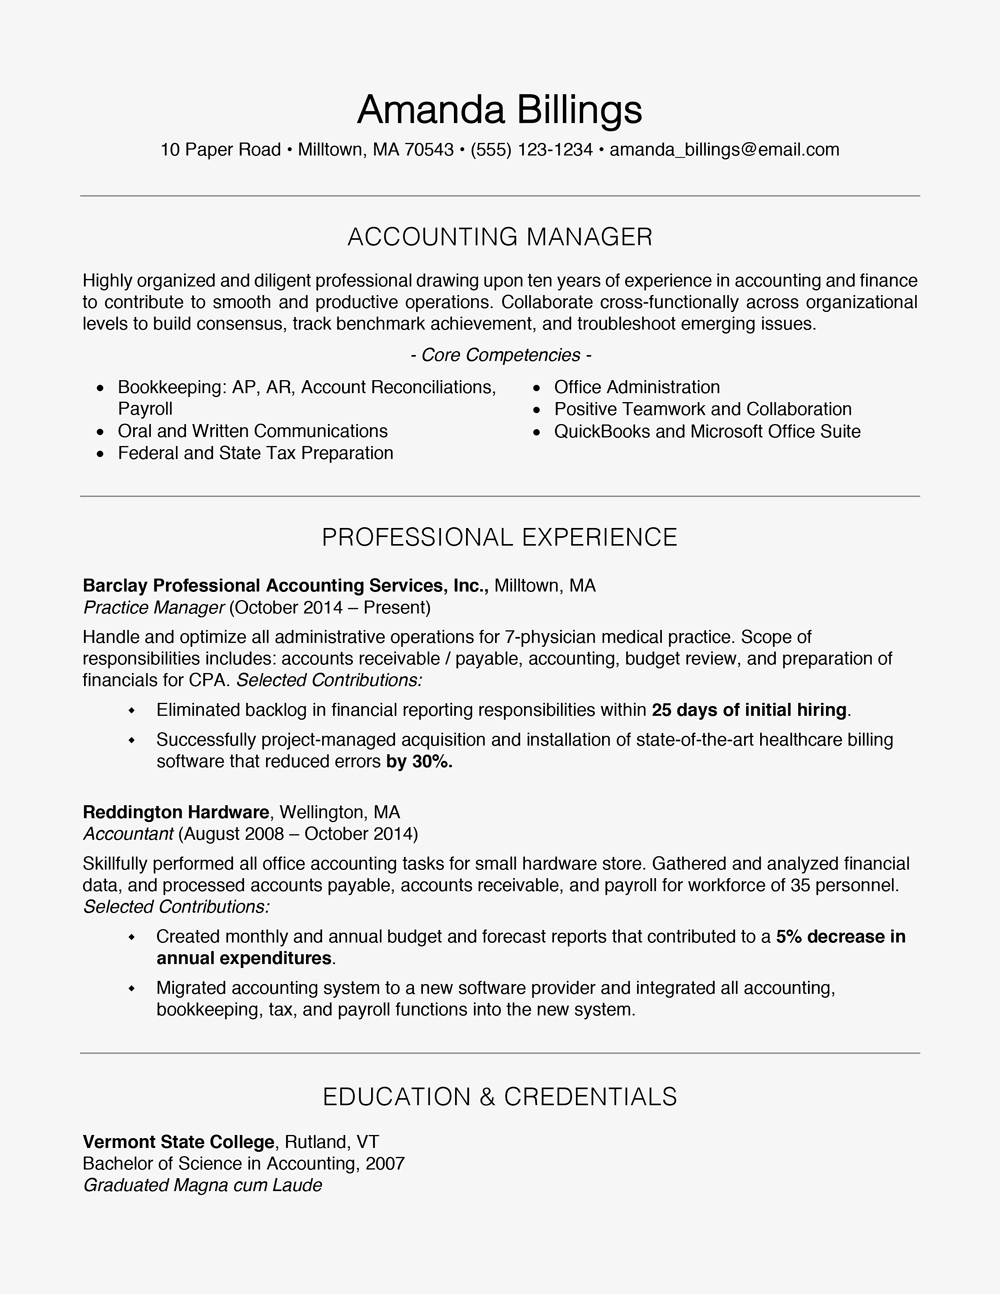 Should You Use A Resume Template - 100 Free Professional Resume Examples and Writing Tips